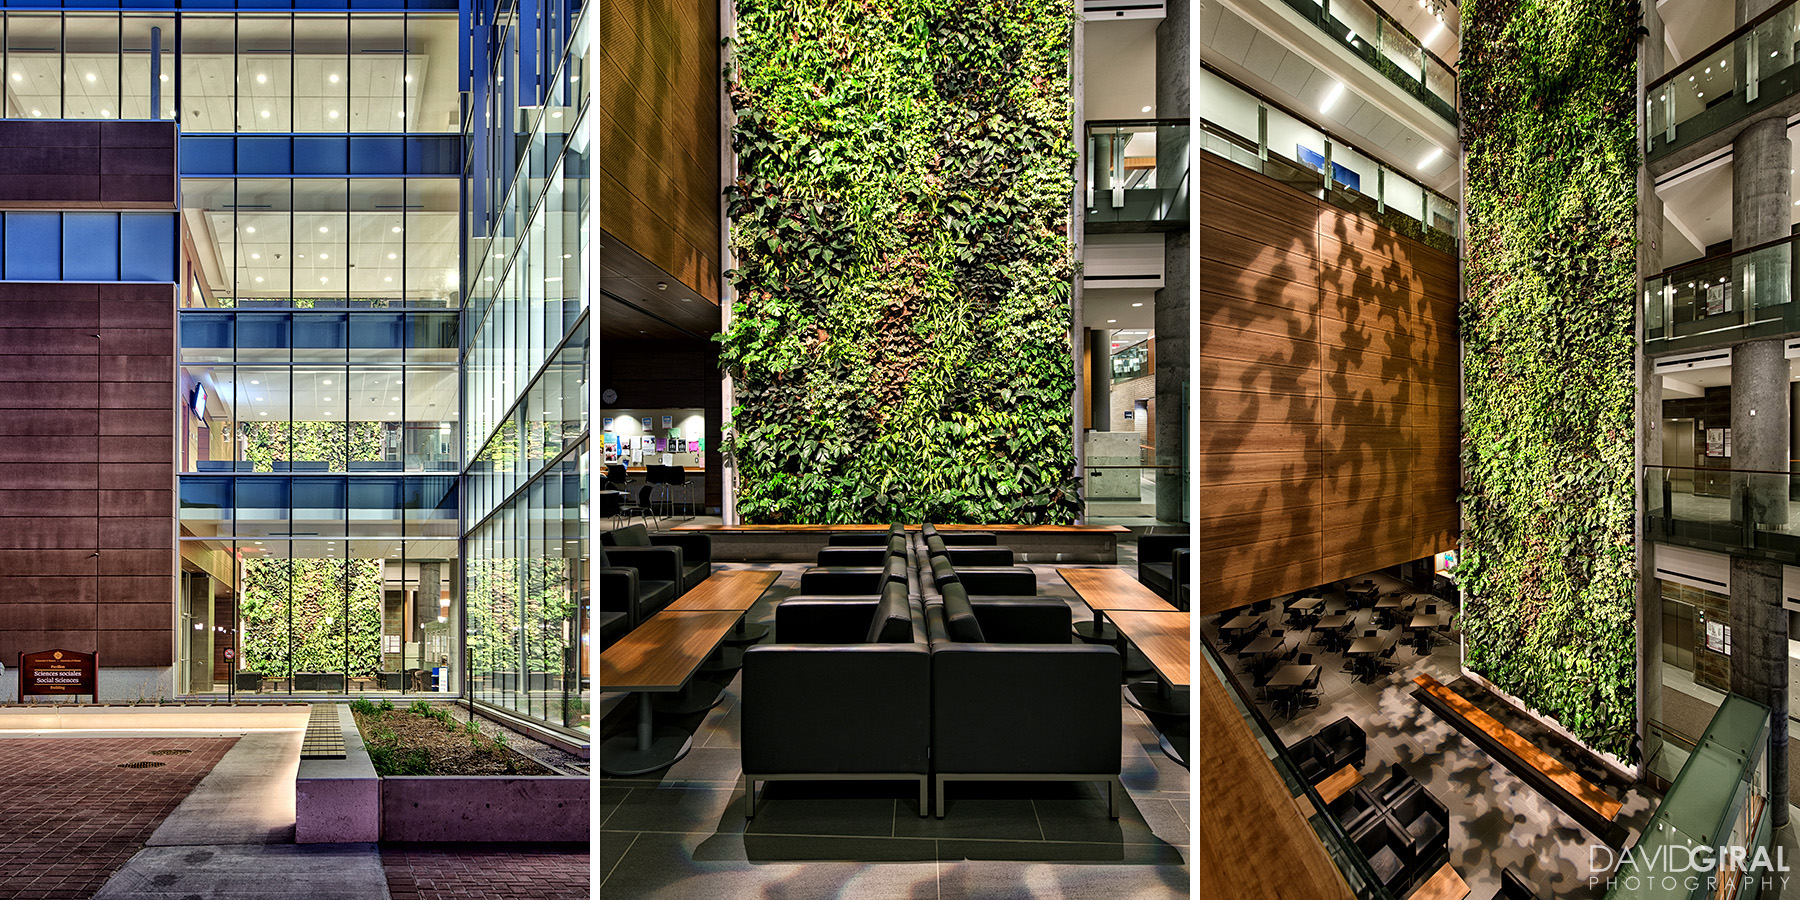 Interiors and biofilter living wall of Faculty of Social Sciences Building at the University of Ottawa by Diamond Shmitt and KWC Architects